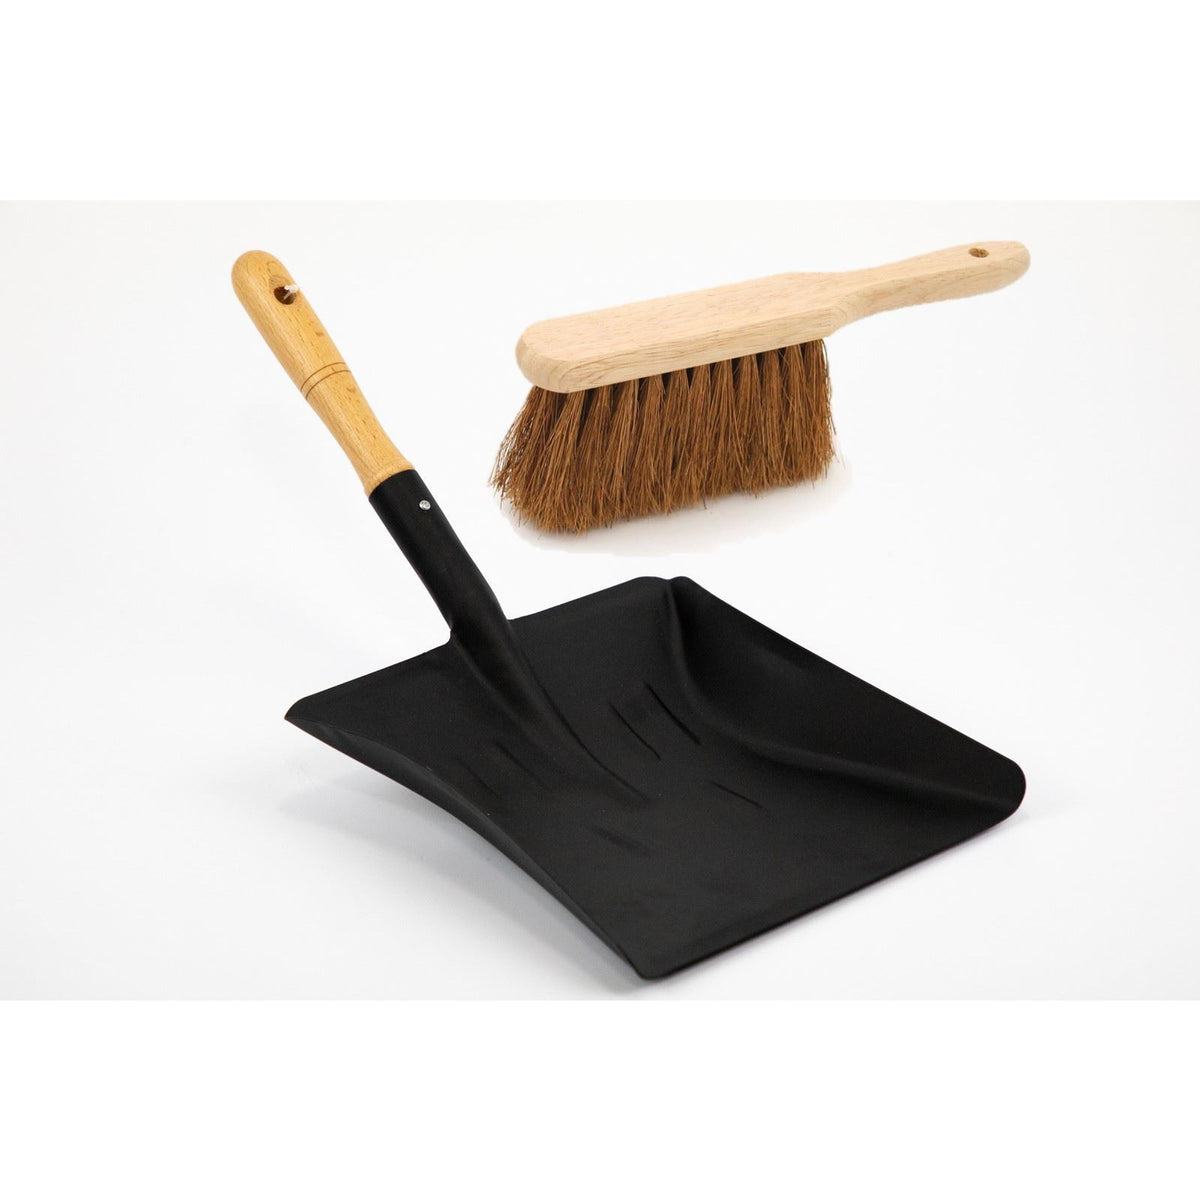 Metal Coal Shovel And Smoothed Wooden Handle Supplied With